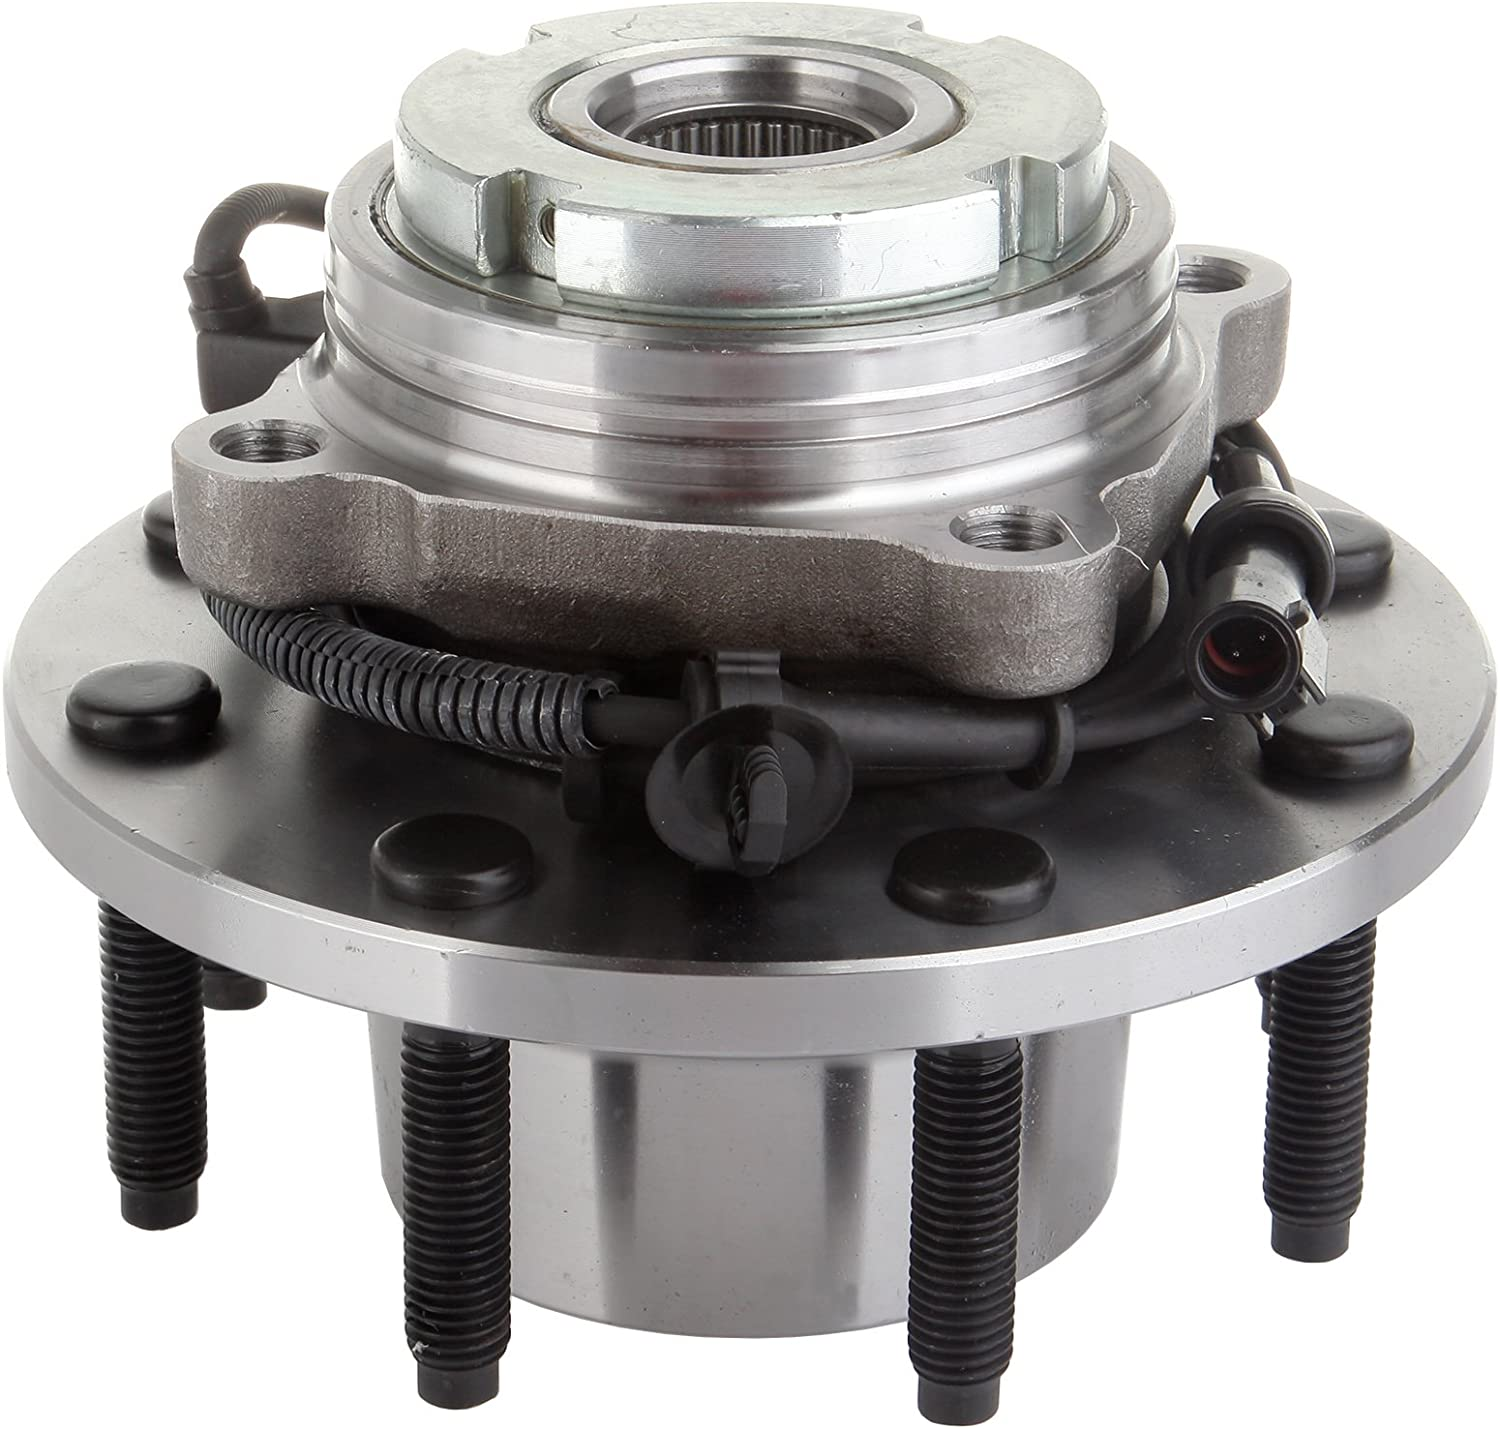 OCPTY Wheel Bearing Hub 515020 Front Assembly ABS New Orleans Mall Ranking TOP2 Lu 8 W